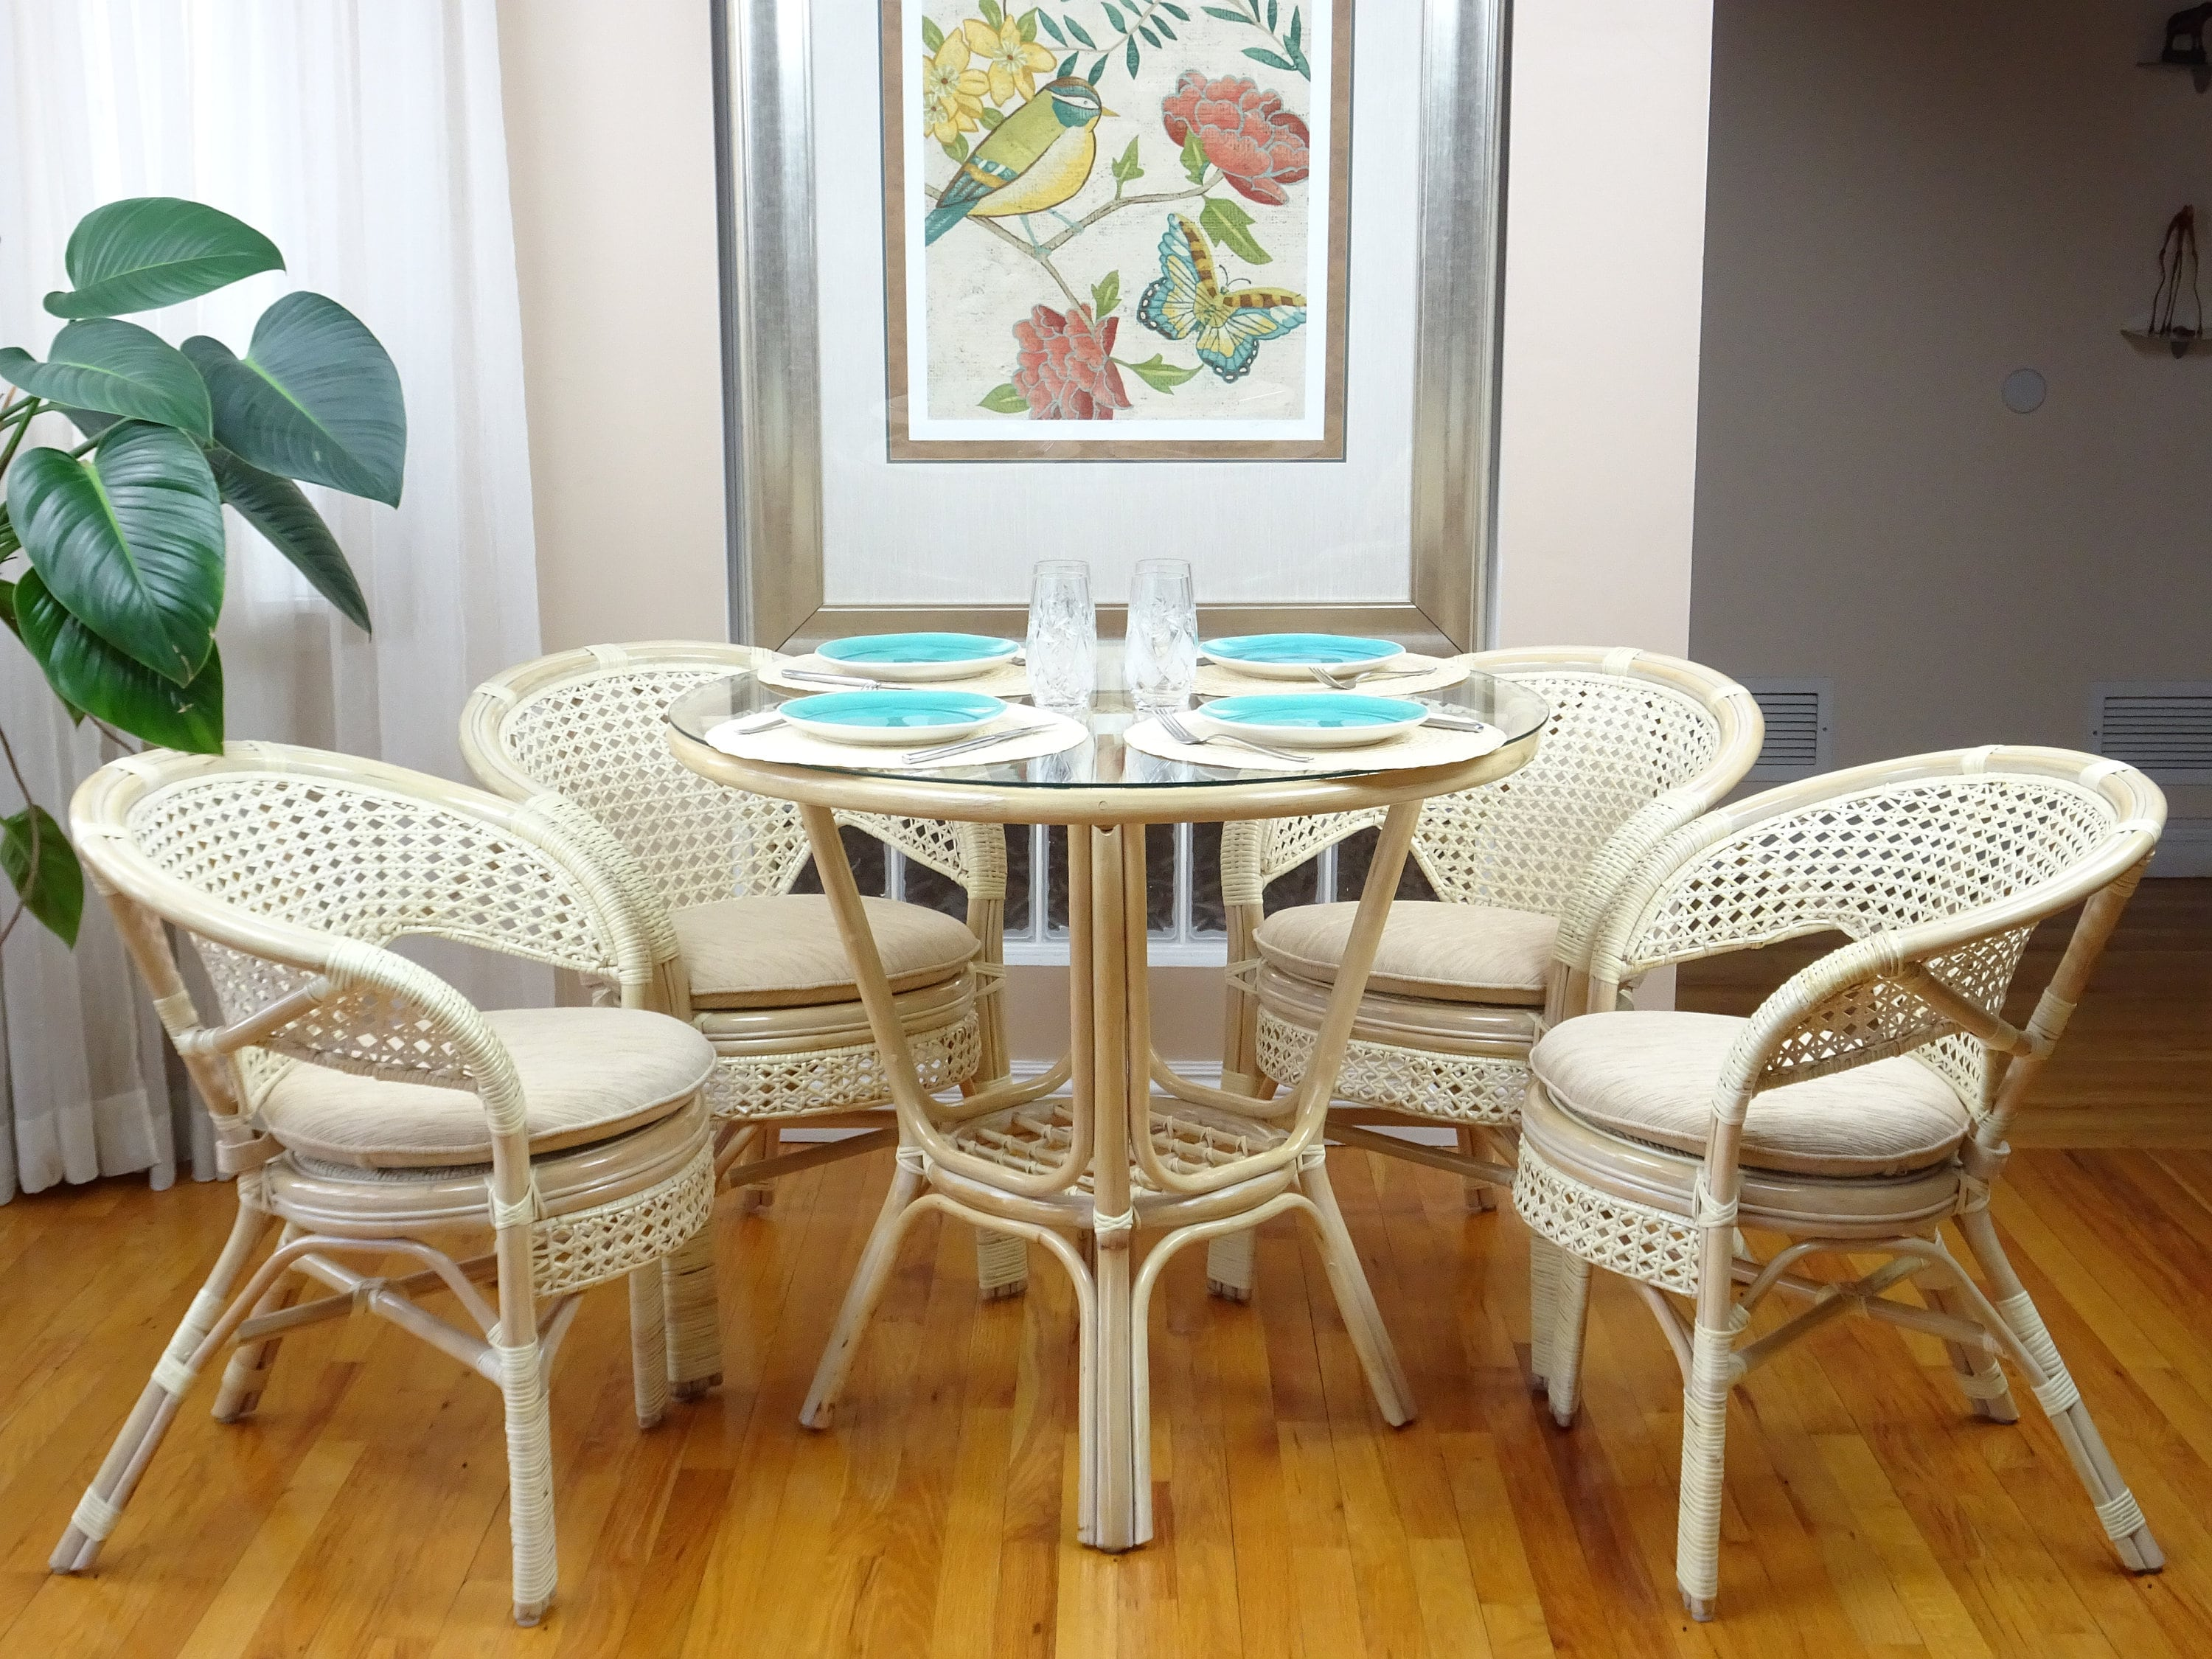 Esszimmermöbel Rattan Pelangi Rattan Wicker Dining Set Of Round Table Glass Top 4 Arm Chairs White Wash